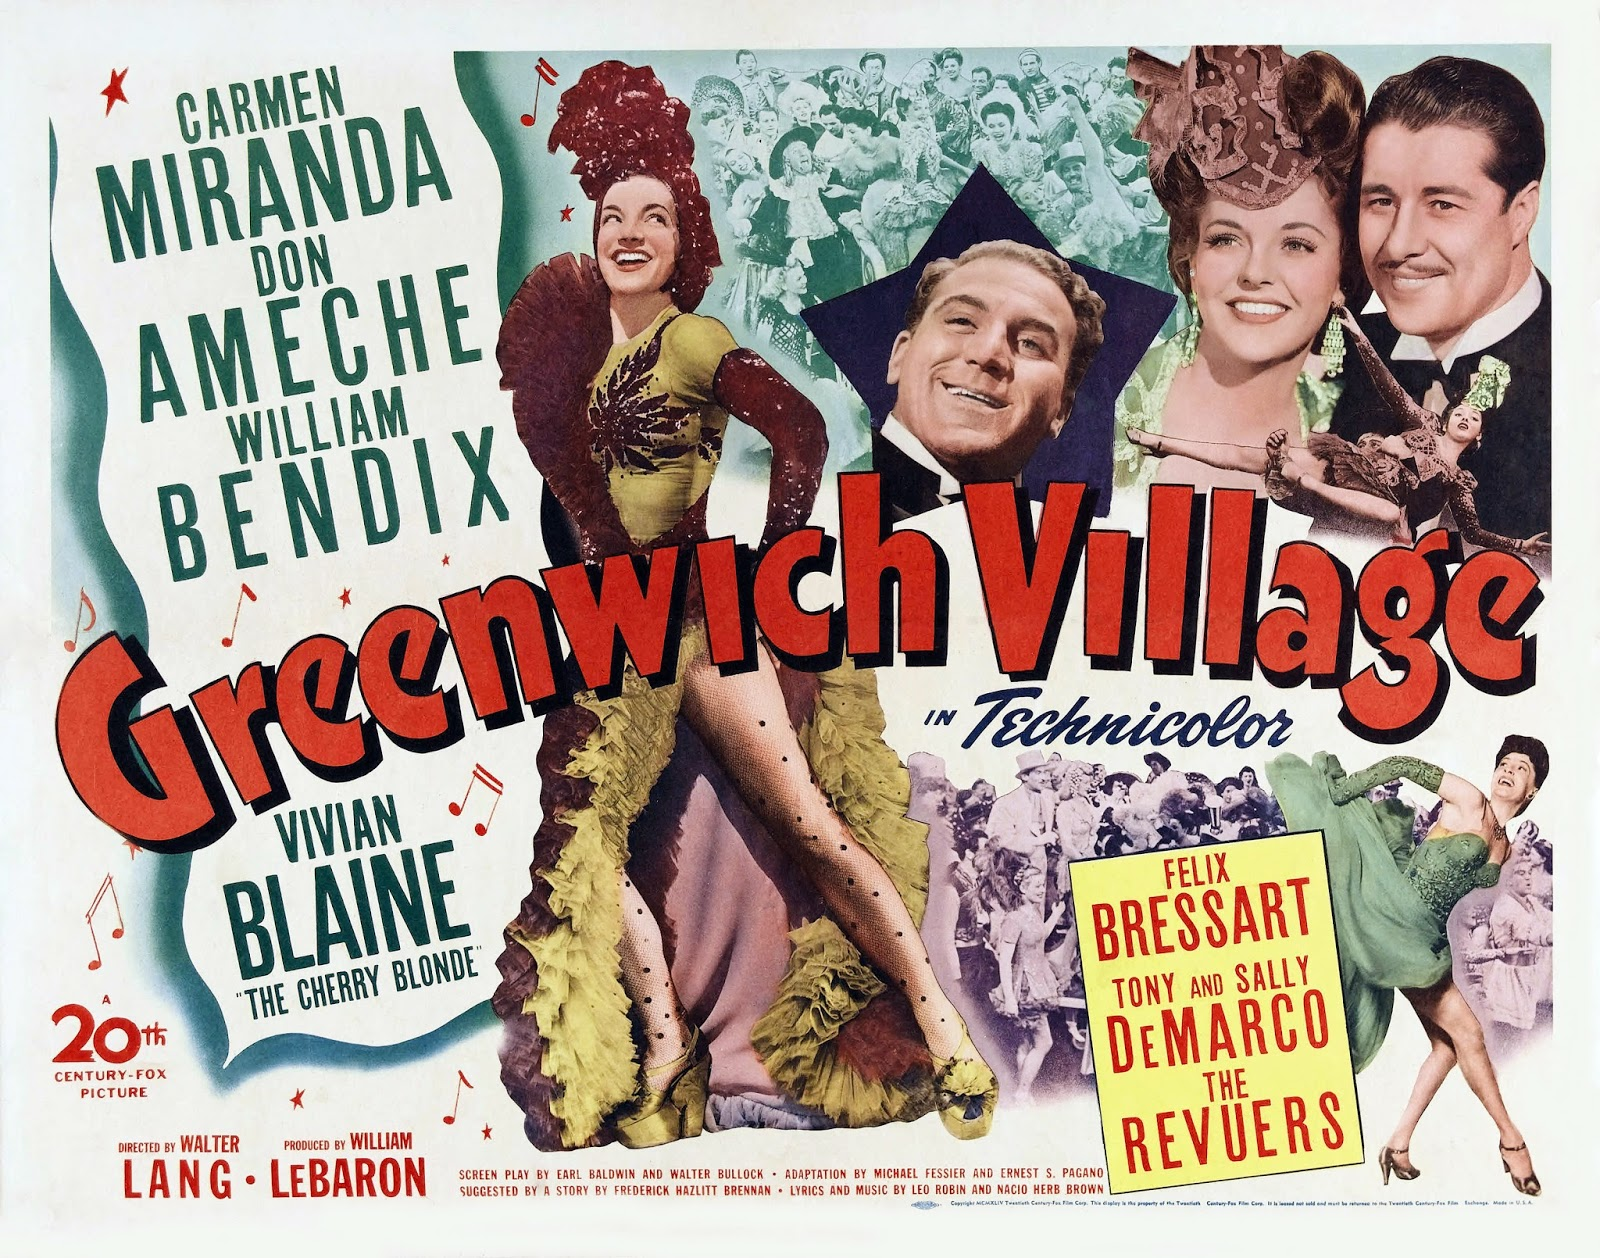 greenwich-village-don-ameche-carmen-miranda